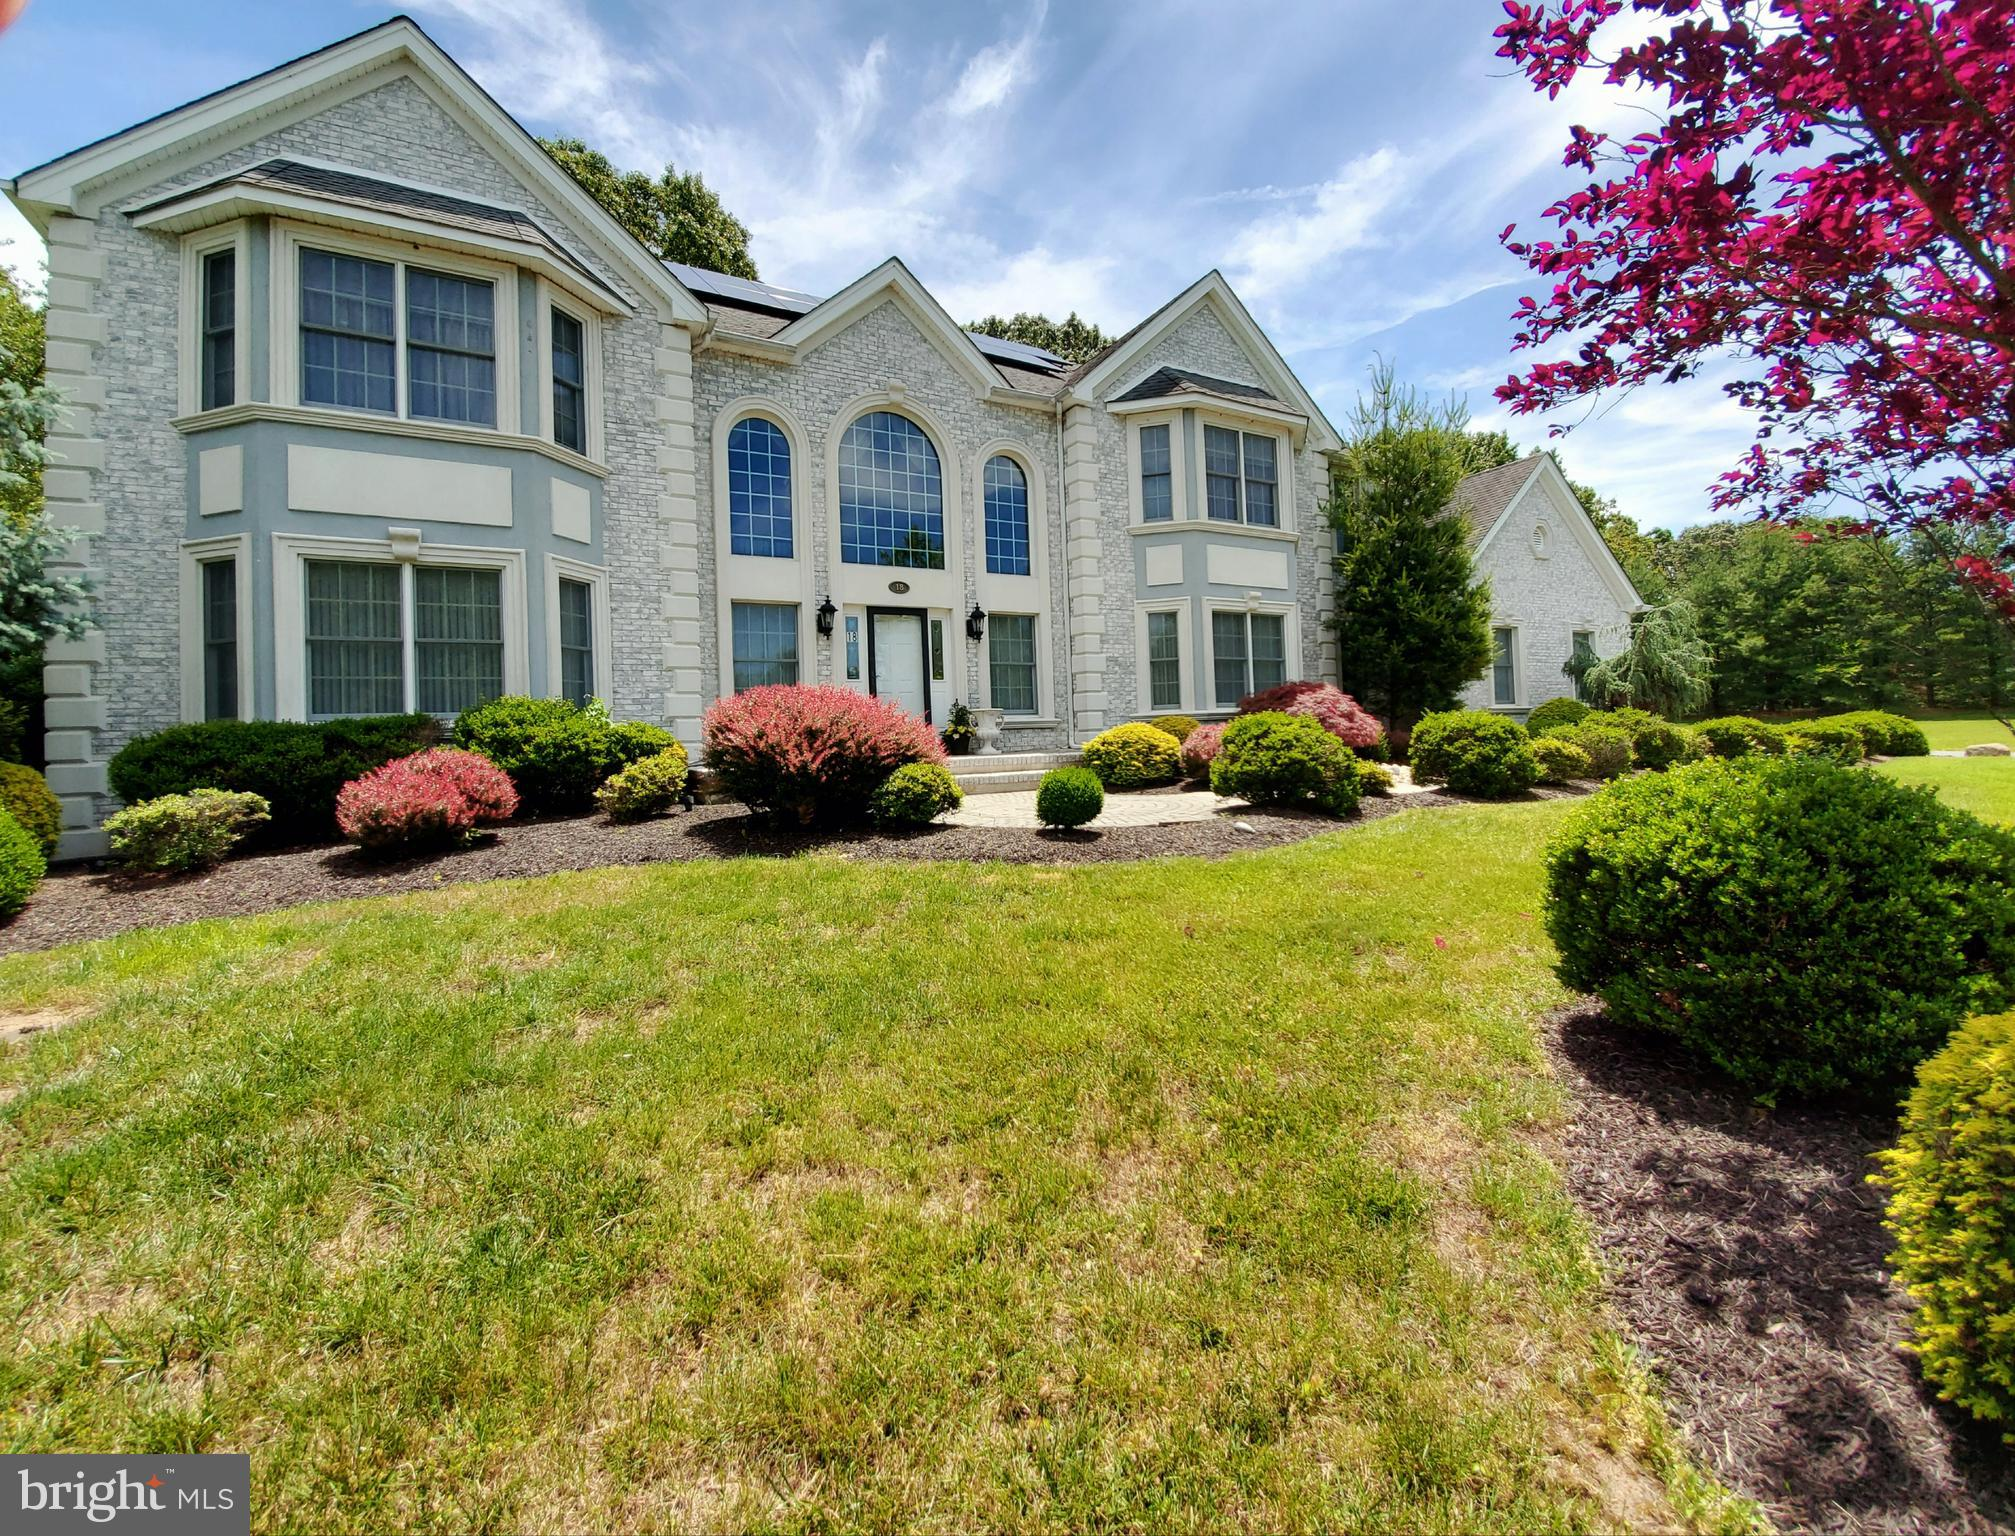 18 WYNWOOD DRIVE 18, PRINCETON JUNCTION, NJ 08550